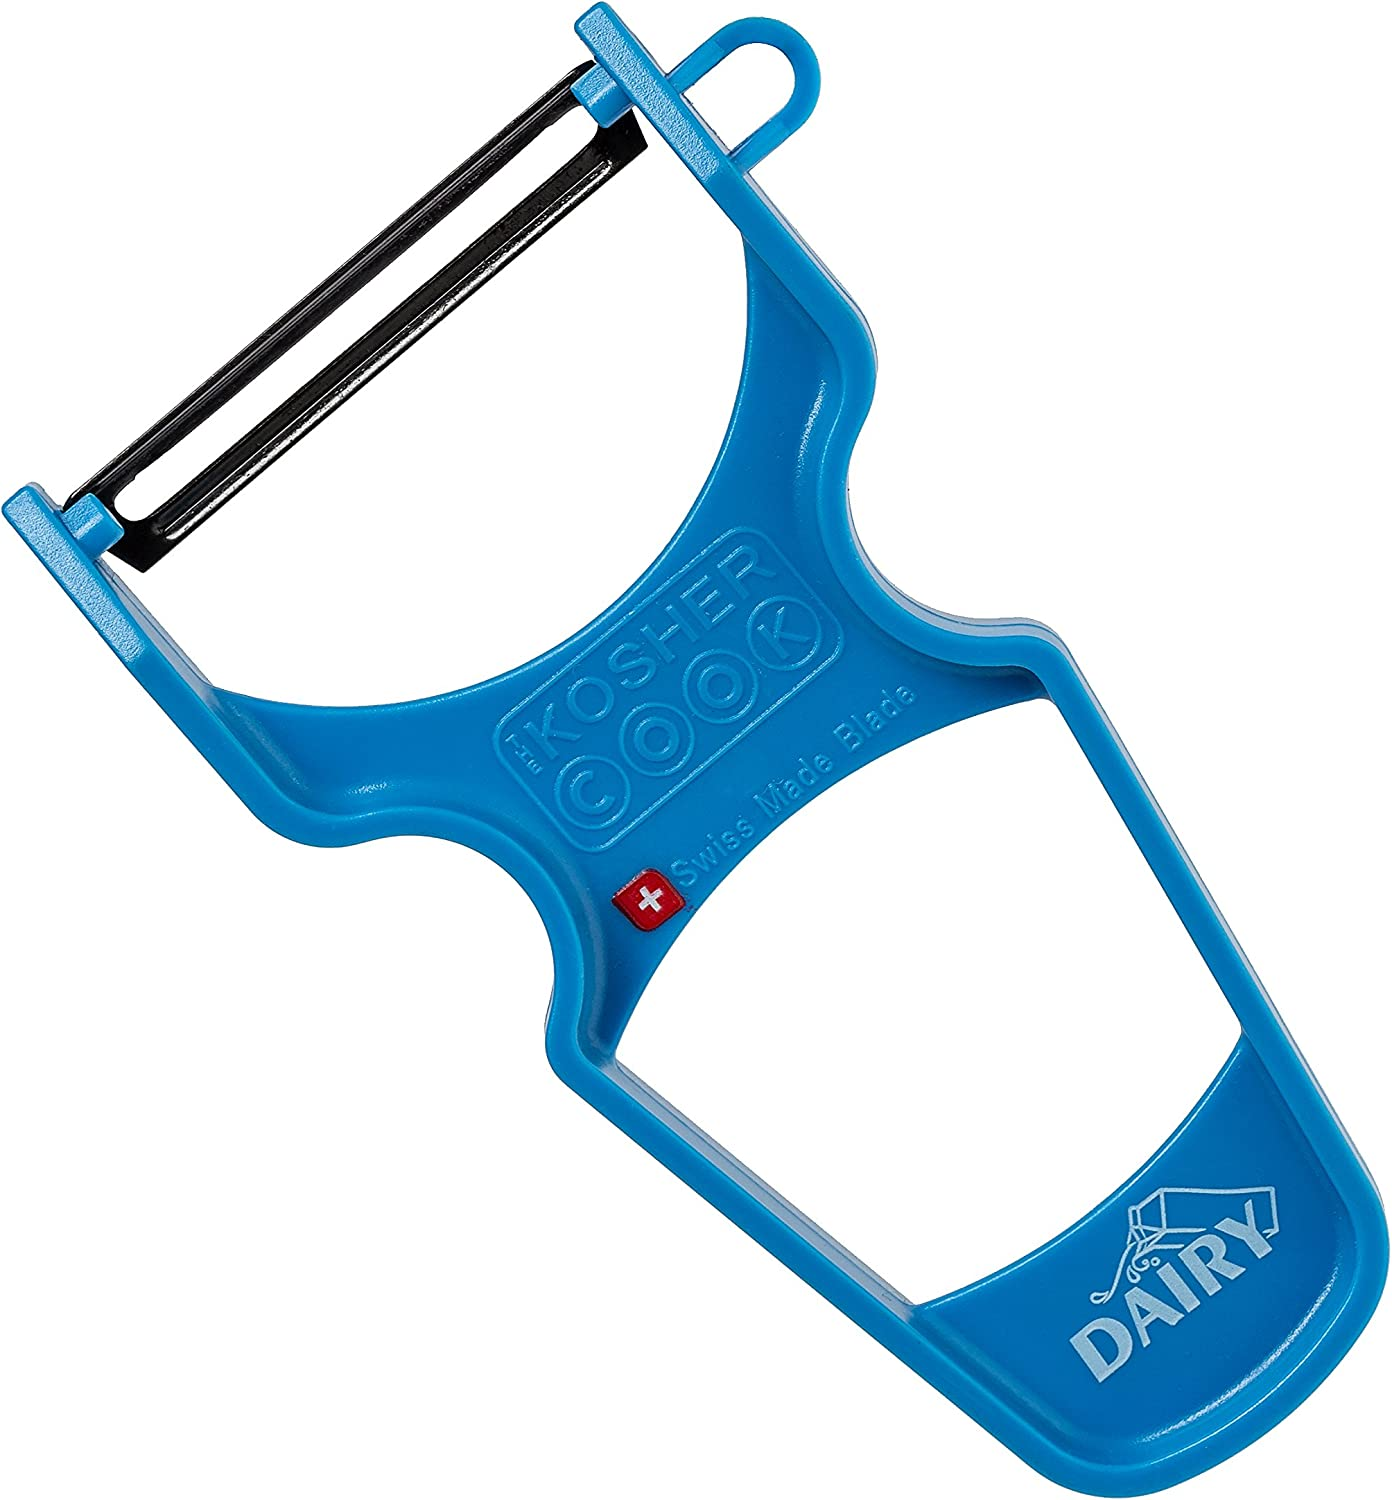 Dairy Blue Y Vegetable Peeler - Heavy Duty, Ultra Sharp Carbon Steel Swiss Blade, Ergonomic Plastic Handle - Color Coded Kitchen Tools by The Kosher Cook